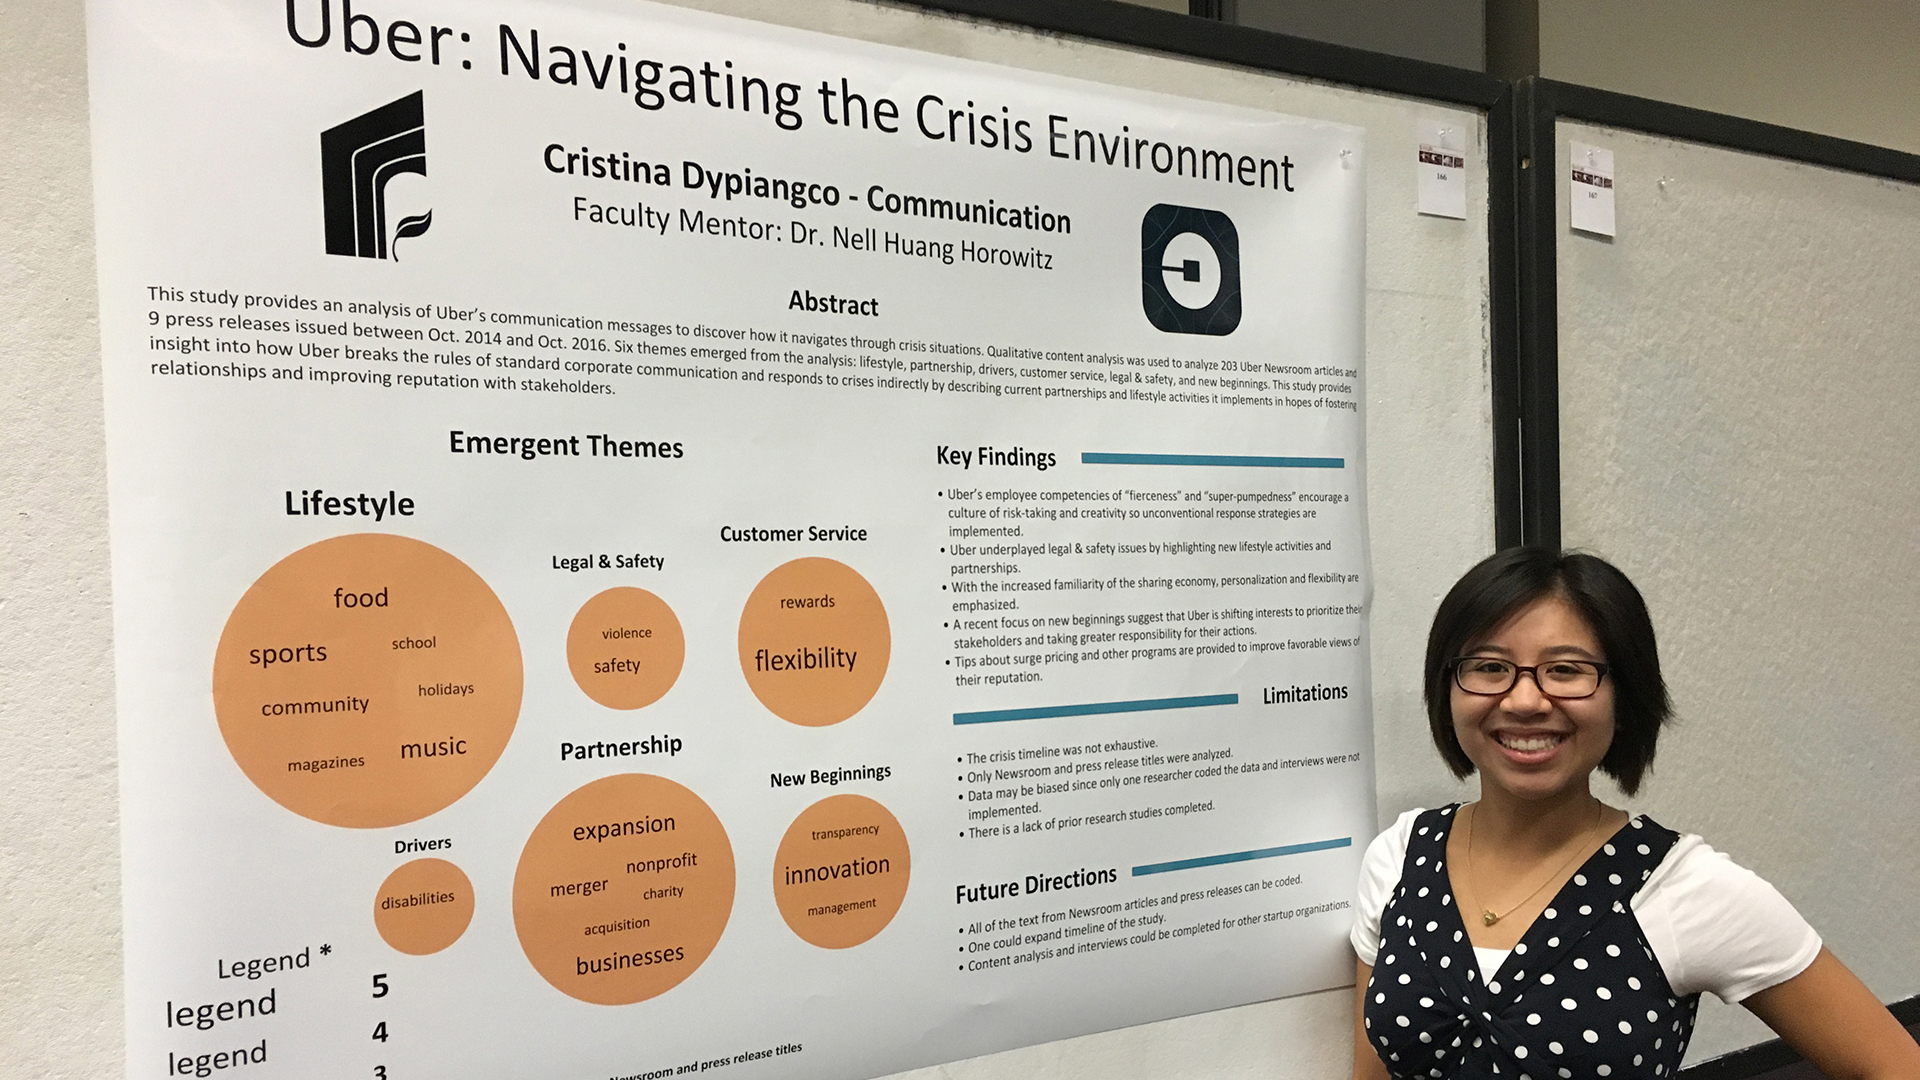 The research project by Cristina Dypiangco examined Uber's unorthodox corporate strategies when responding to a crisis.